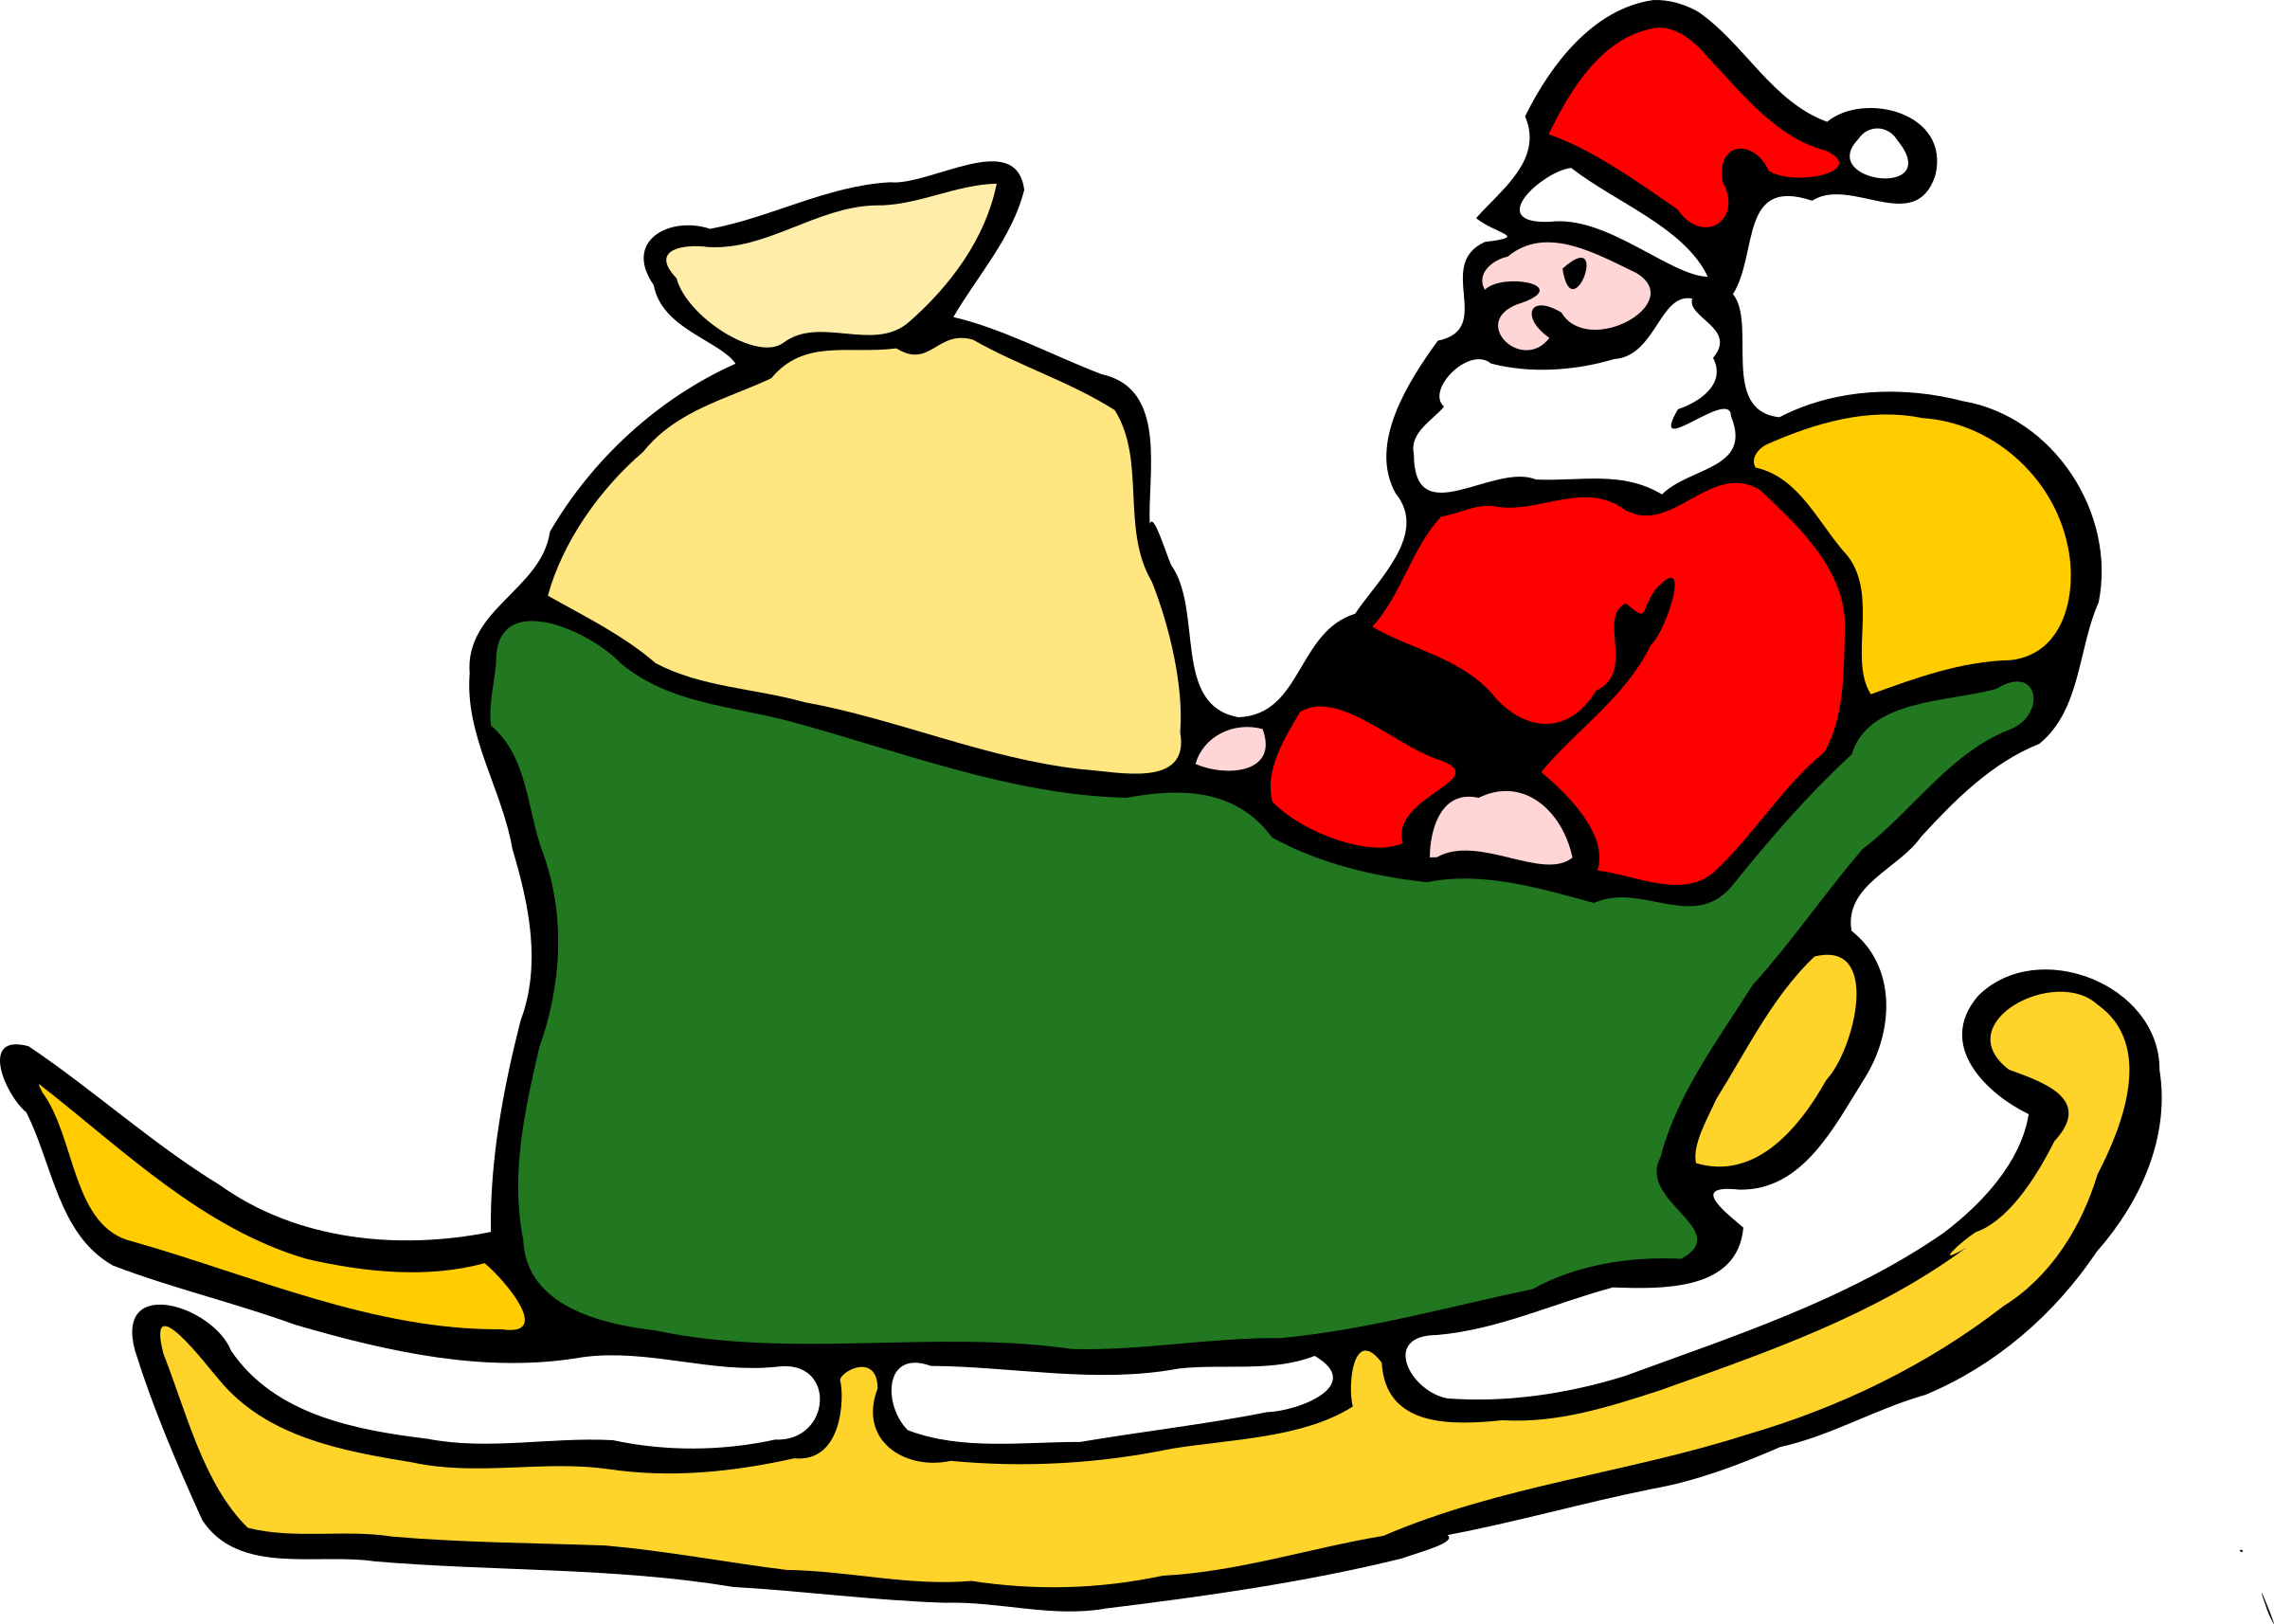 Santa in his sleigh by FEN